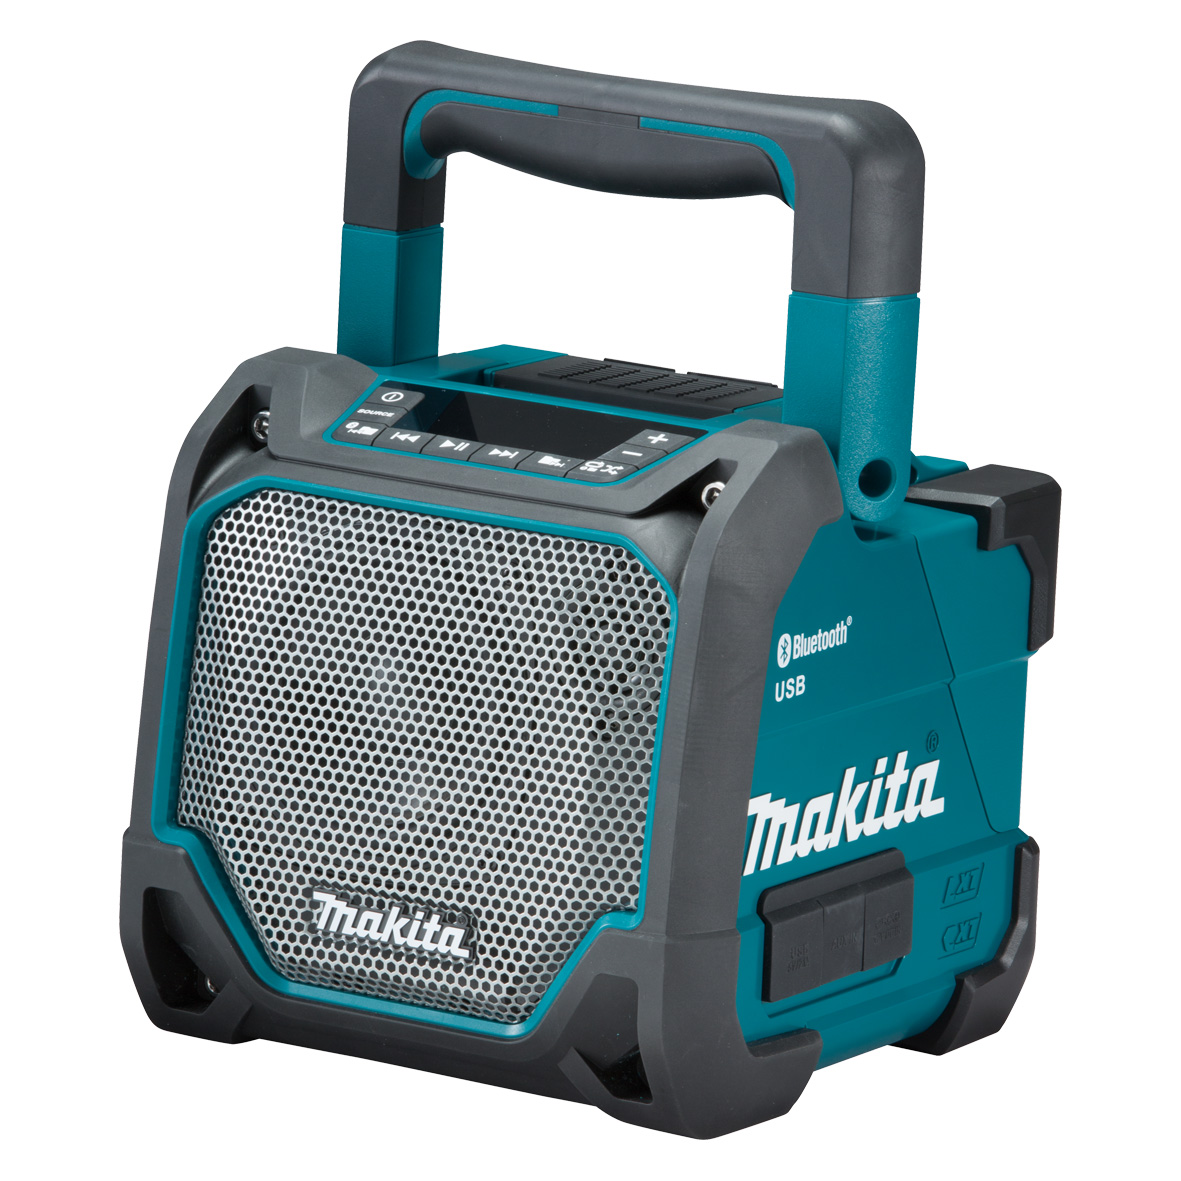 Makita DMR2025 18V Bluetooth Speaker With LCD Display & USB Connection - Body Only